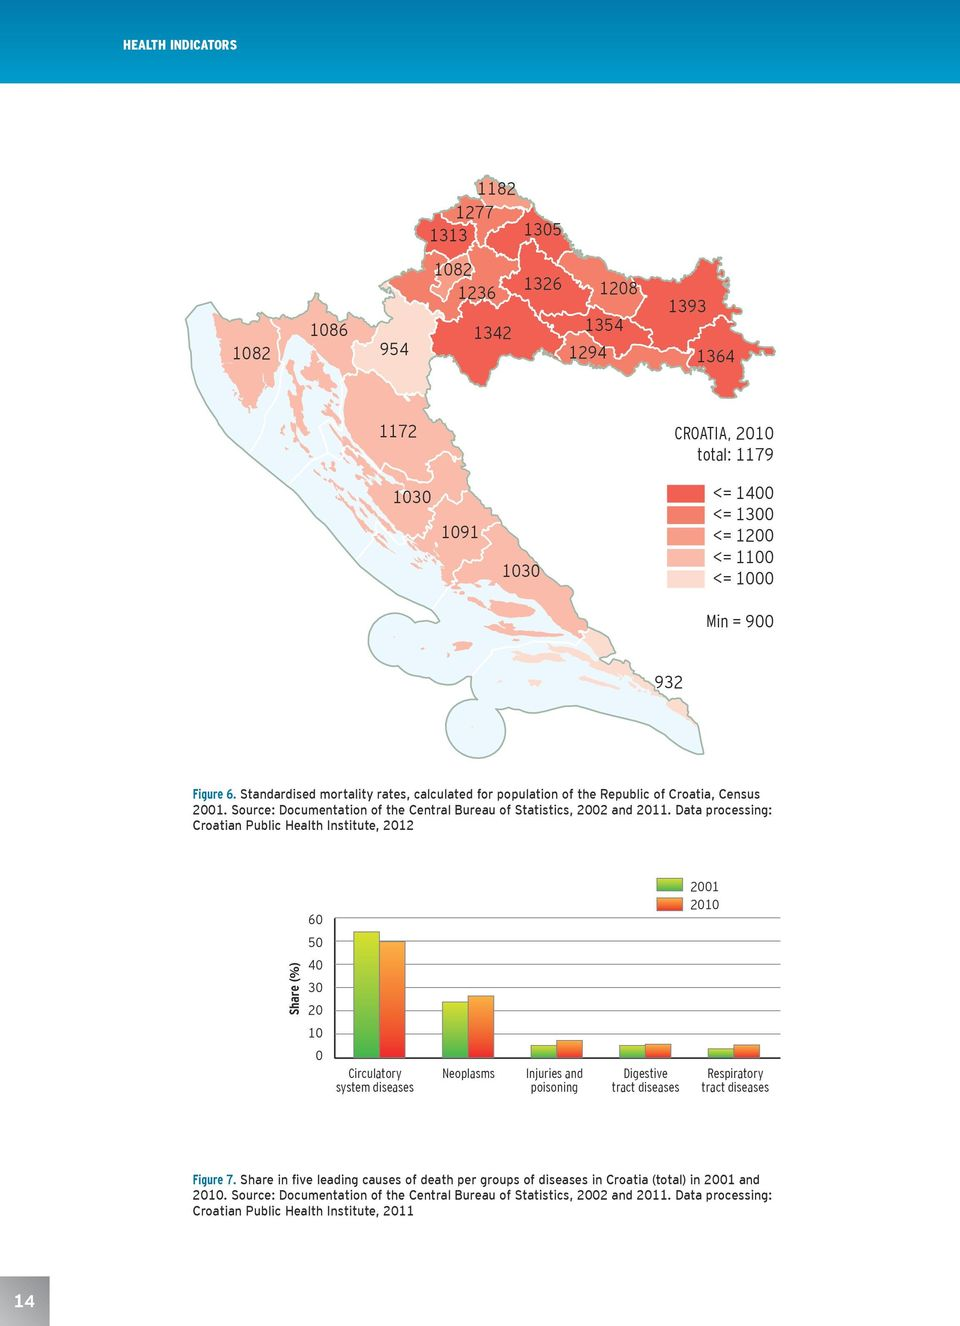 Data processing: Croatian Public Health Institute, 2012 60 2001 2010 50 Share (%) 40 30 20 10 0 Circulatory system diseases Neoplasms Injuries and poisoning Digestive tract diseases Respiratory tract